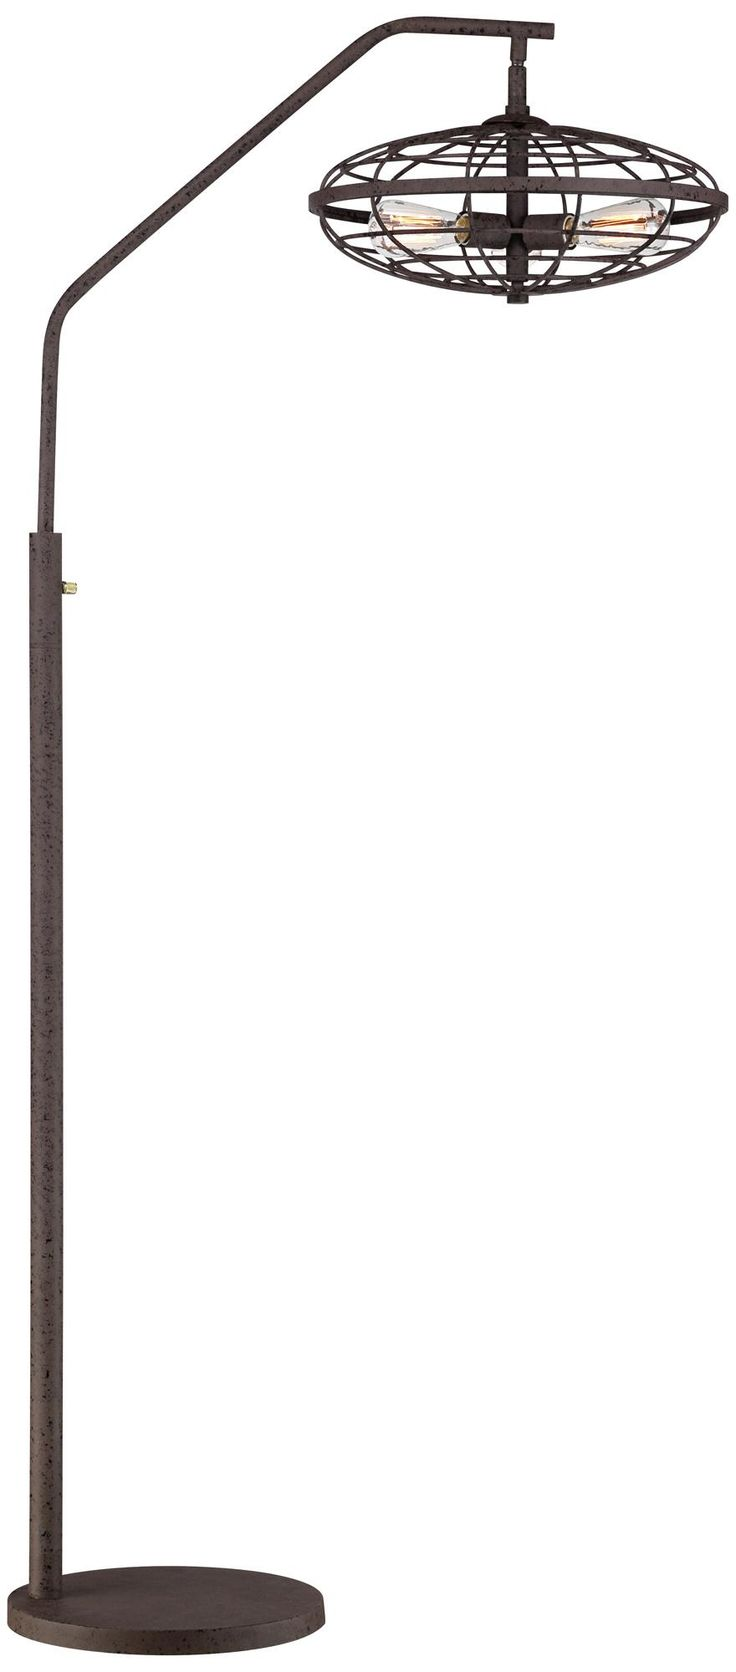 industrial cage 3 light arc rust floor lamp With industrial cage 3 light arc rust floor lamp